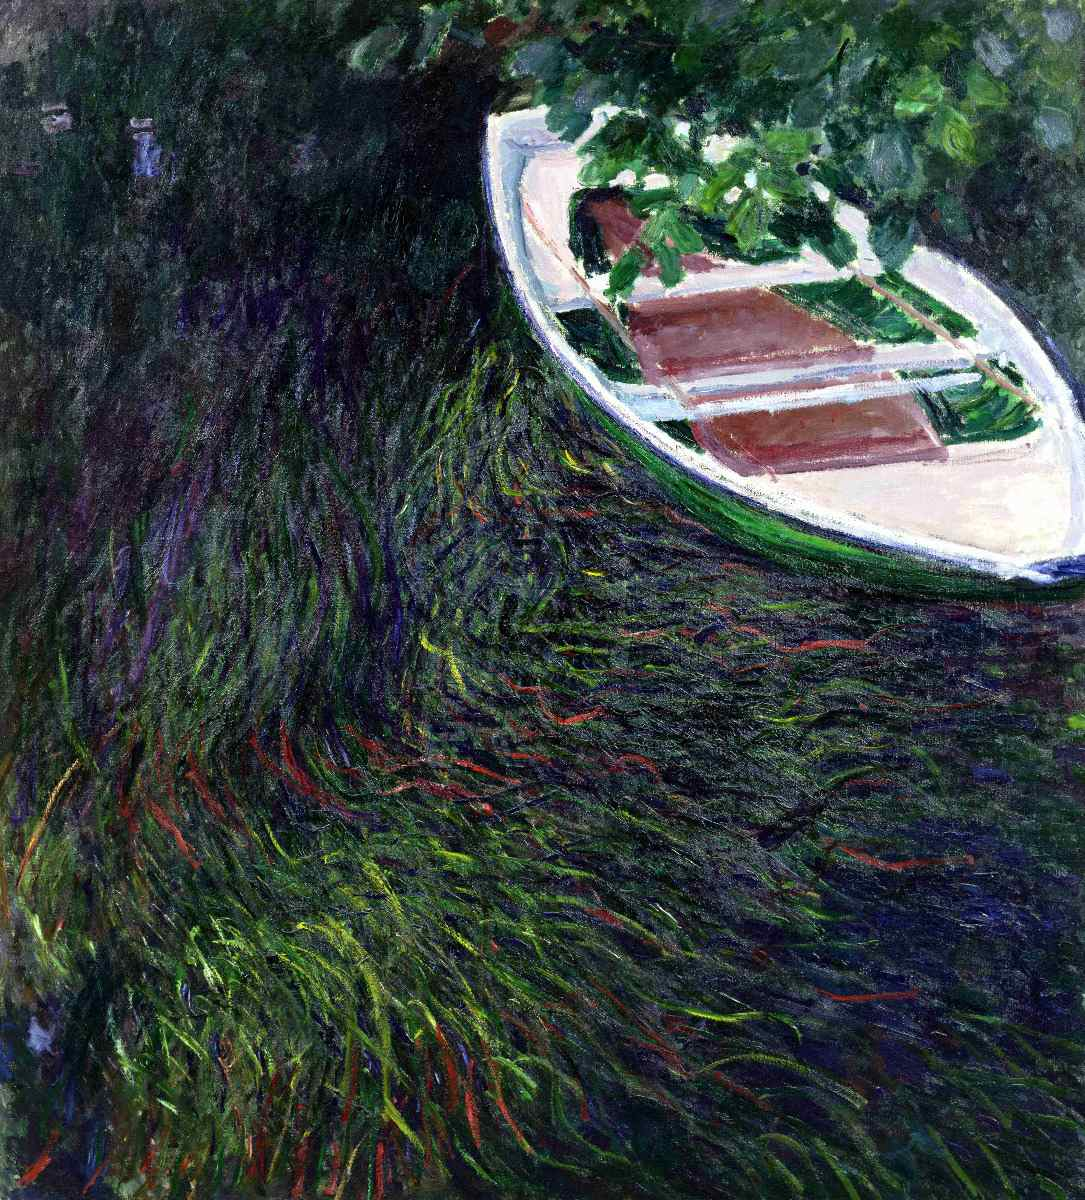 LA BARCA MONET PEN